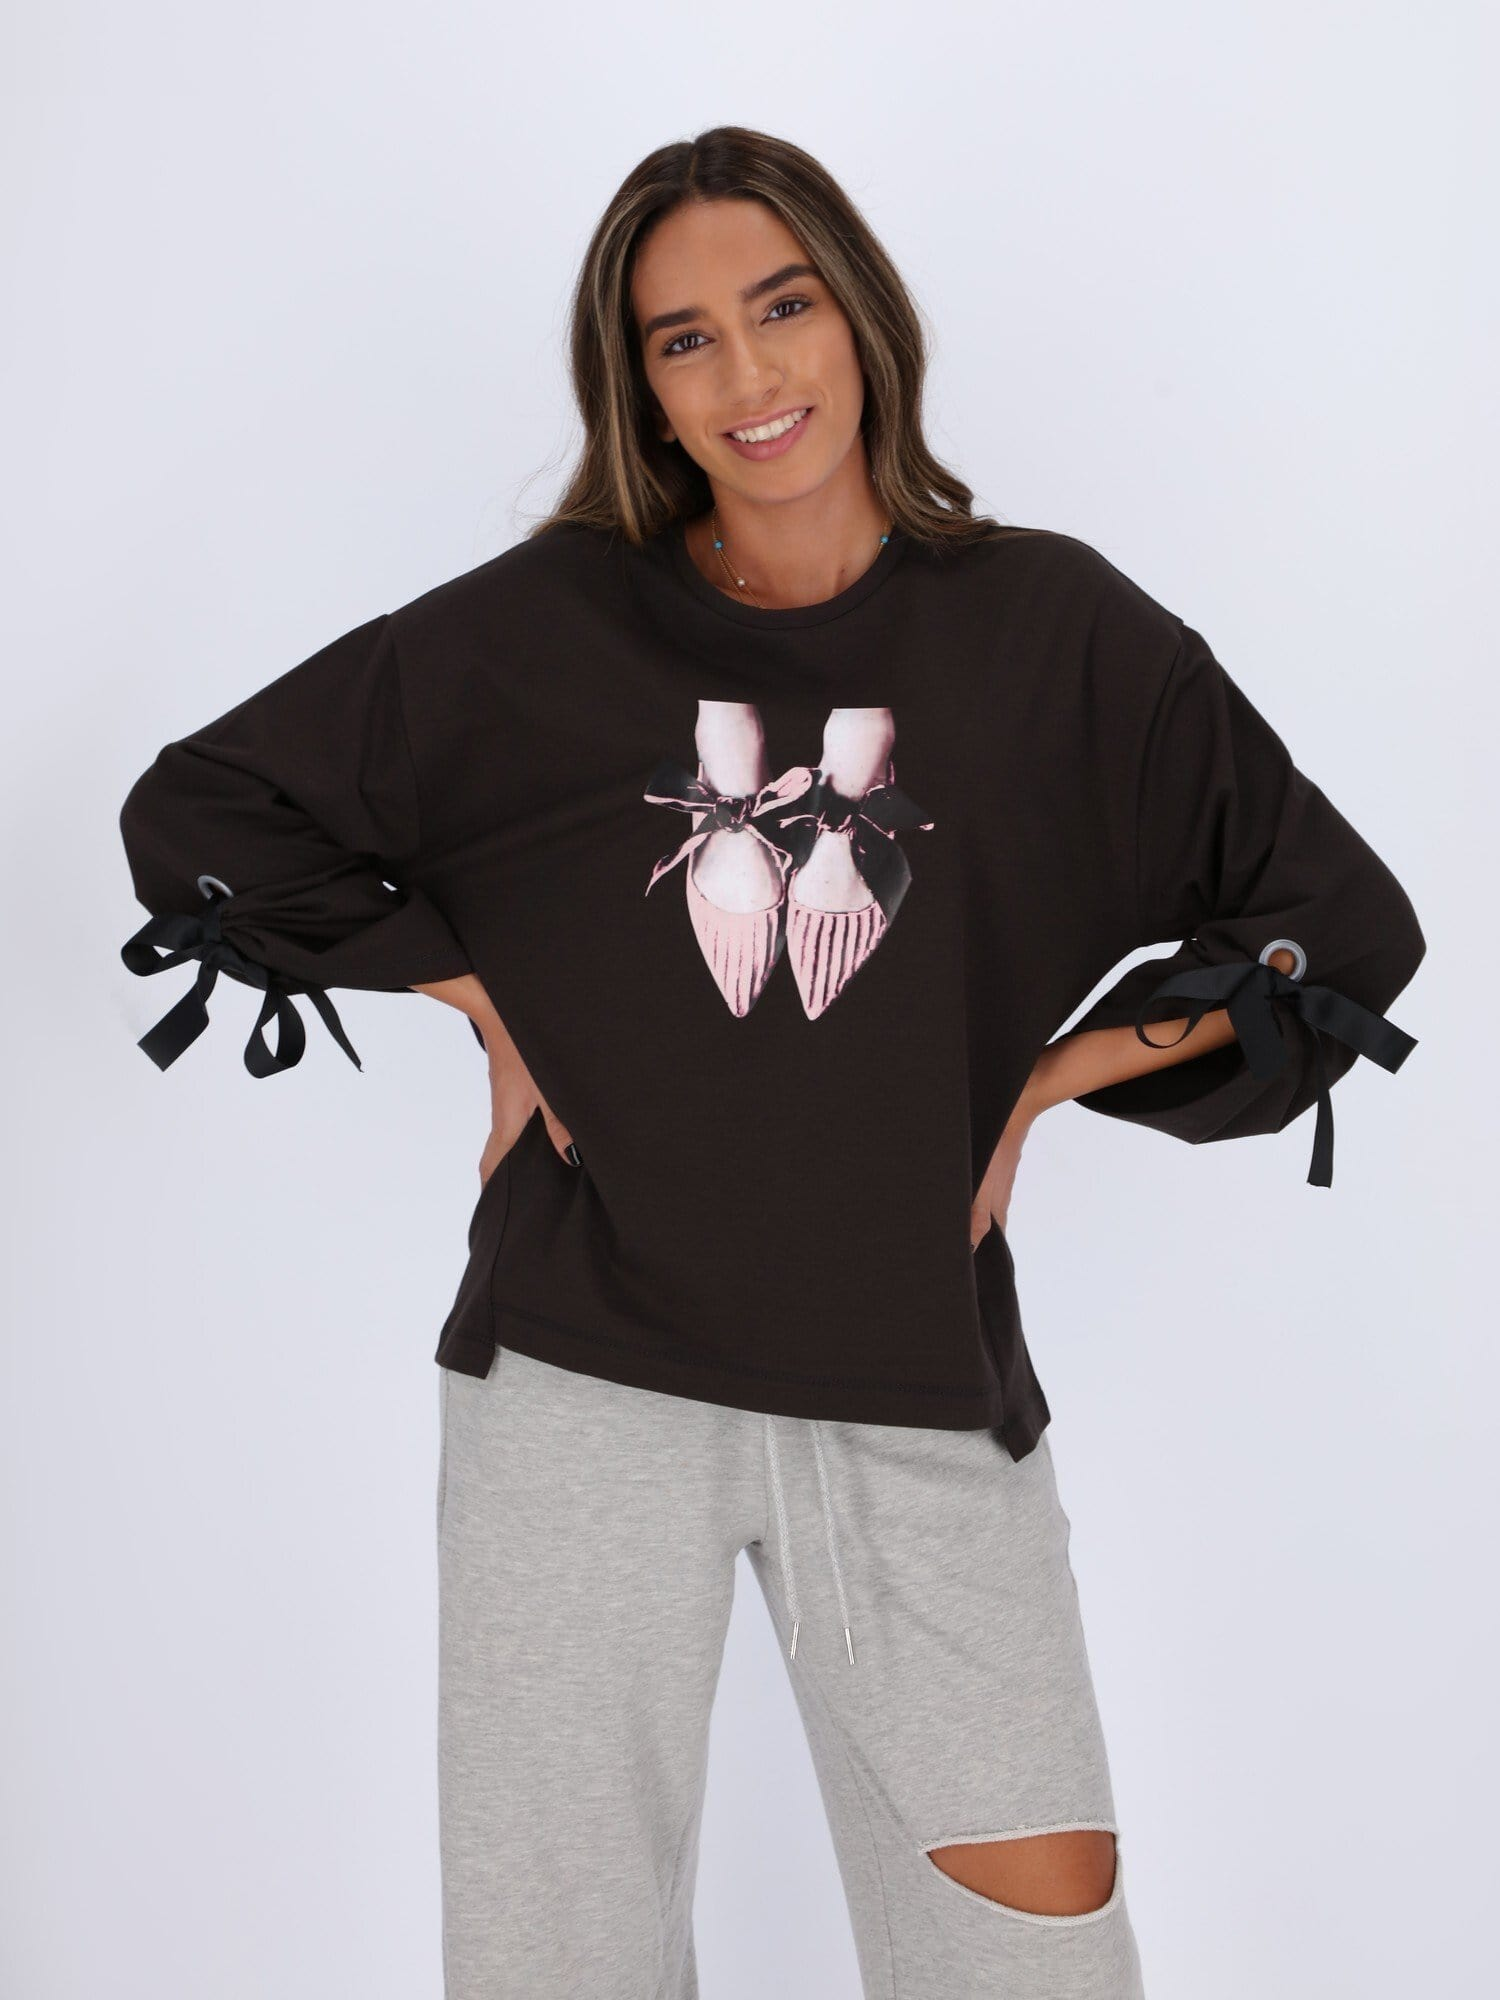 OR Sweatshirts & Hoodies PIRATE BLACK / L Ballerina Sweatshirt